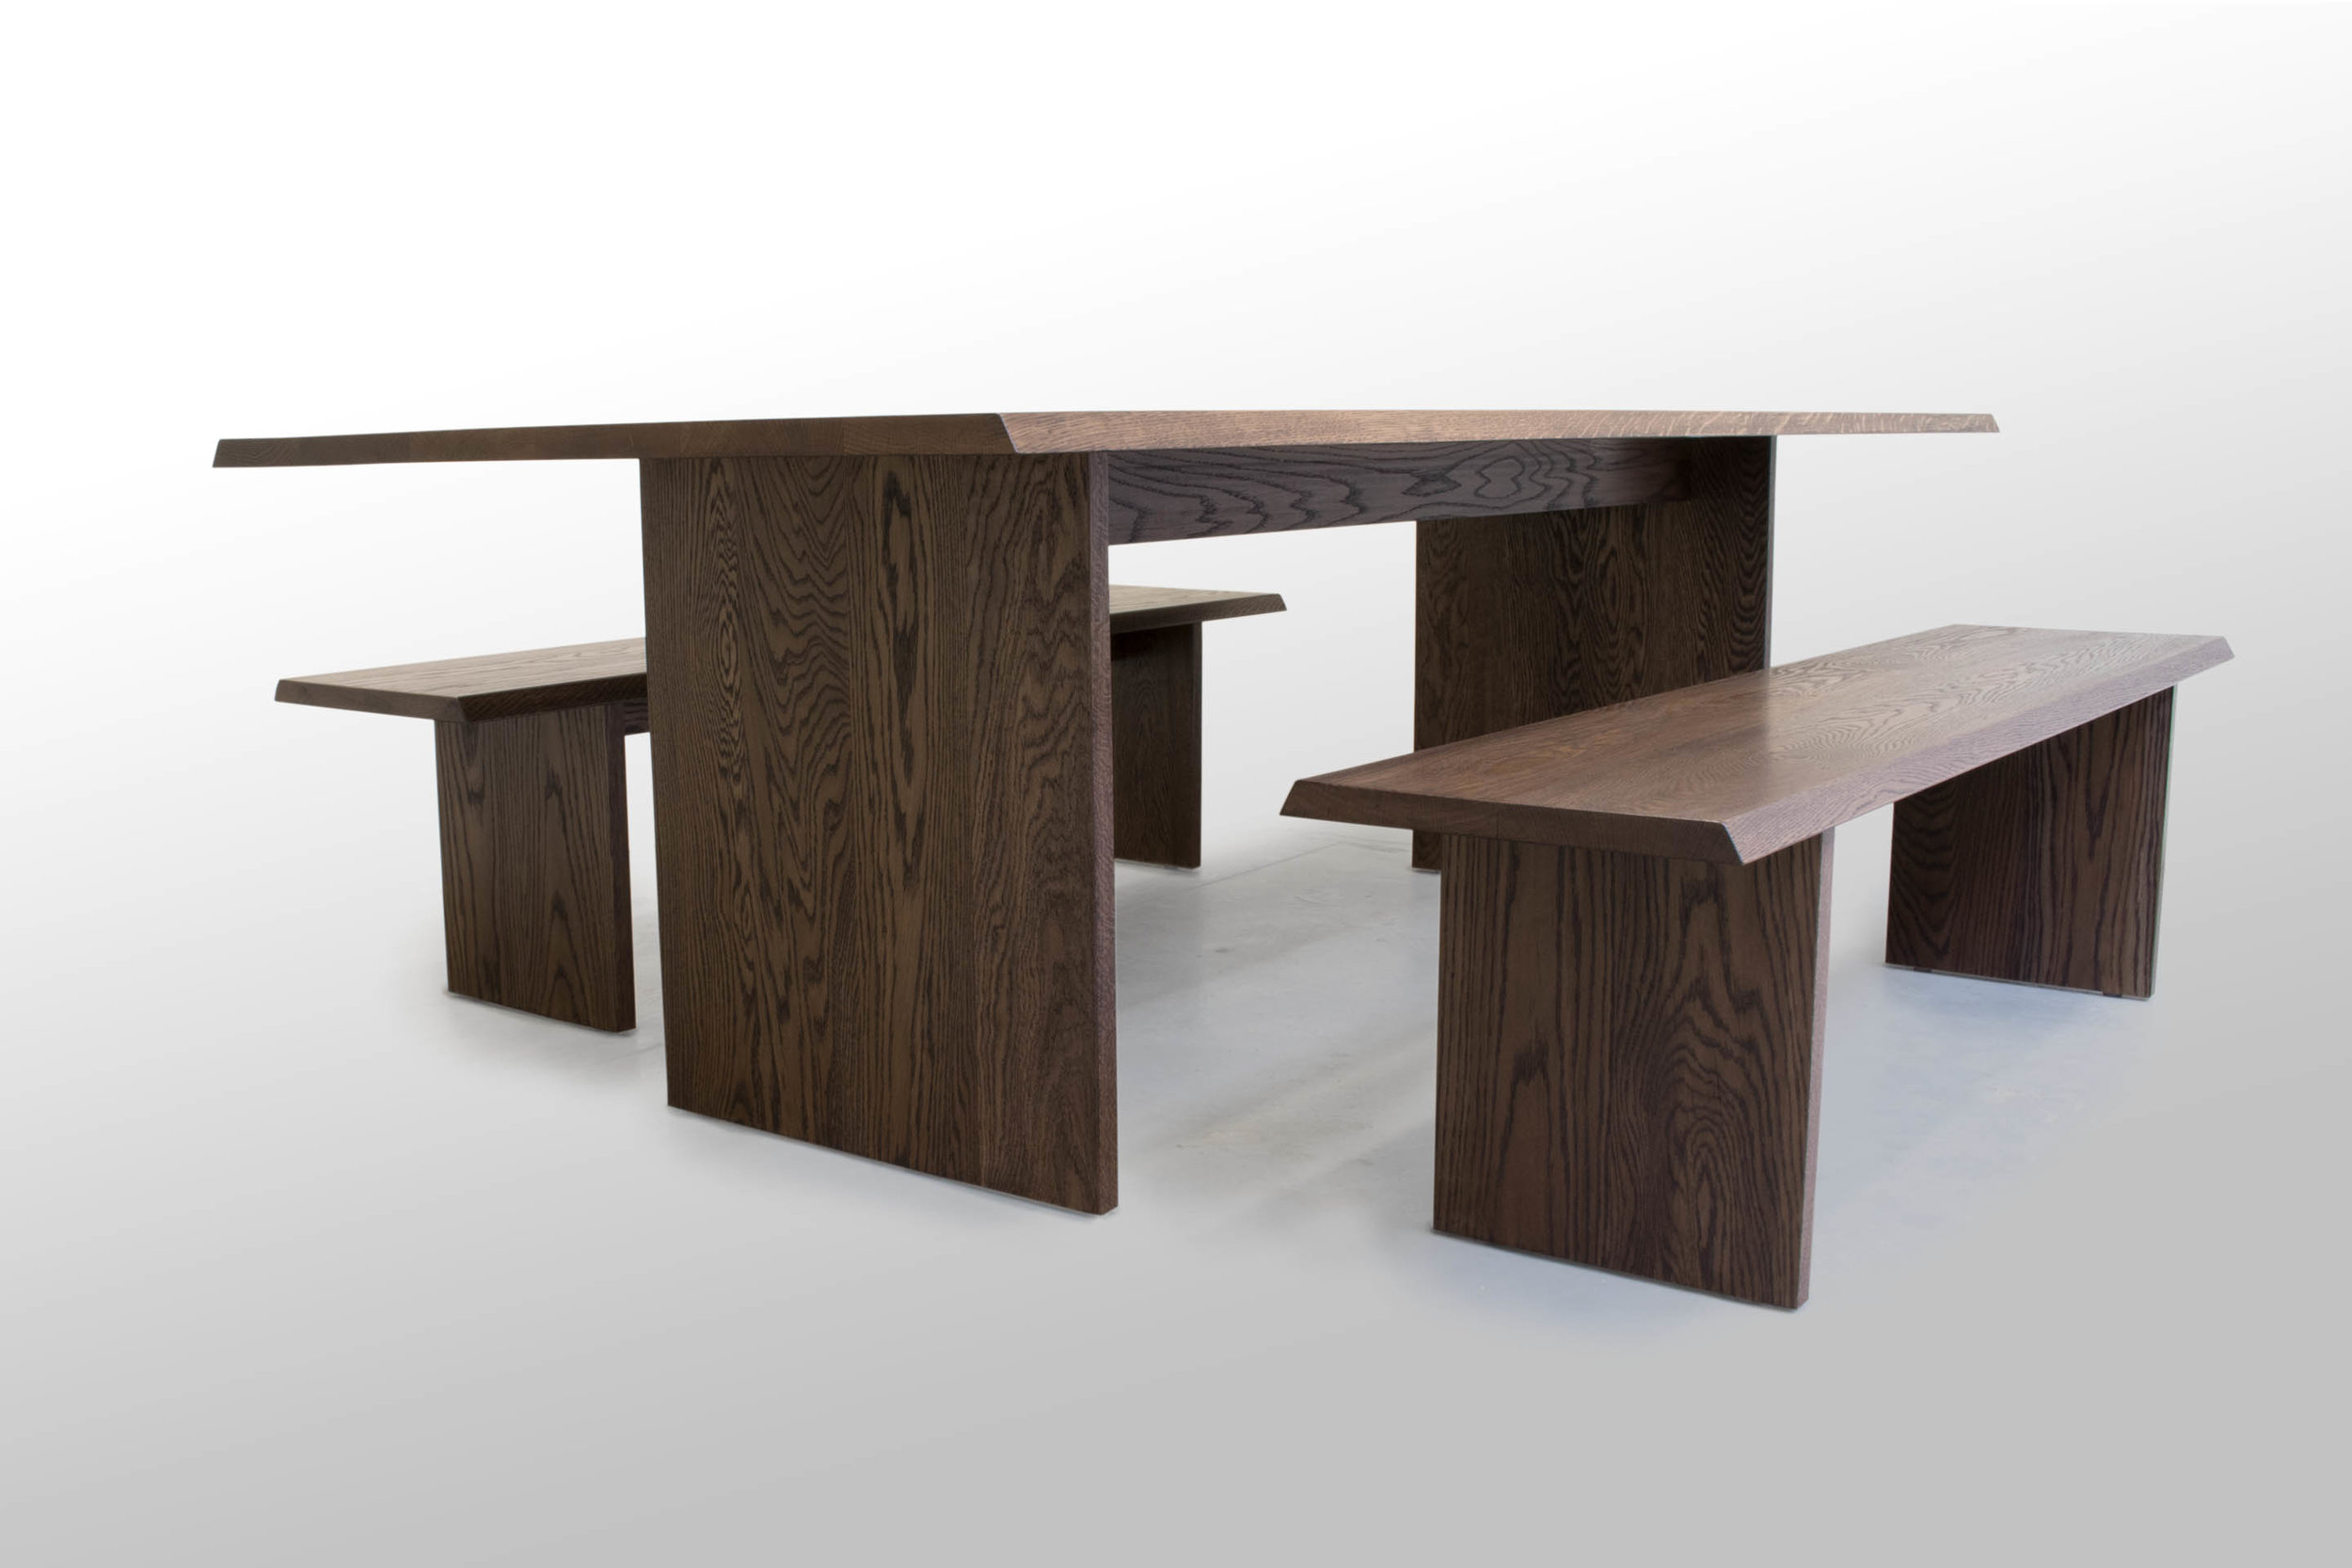 Oak table with benches2.jpg